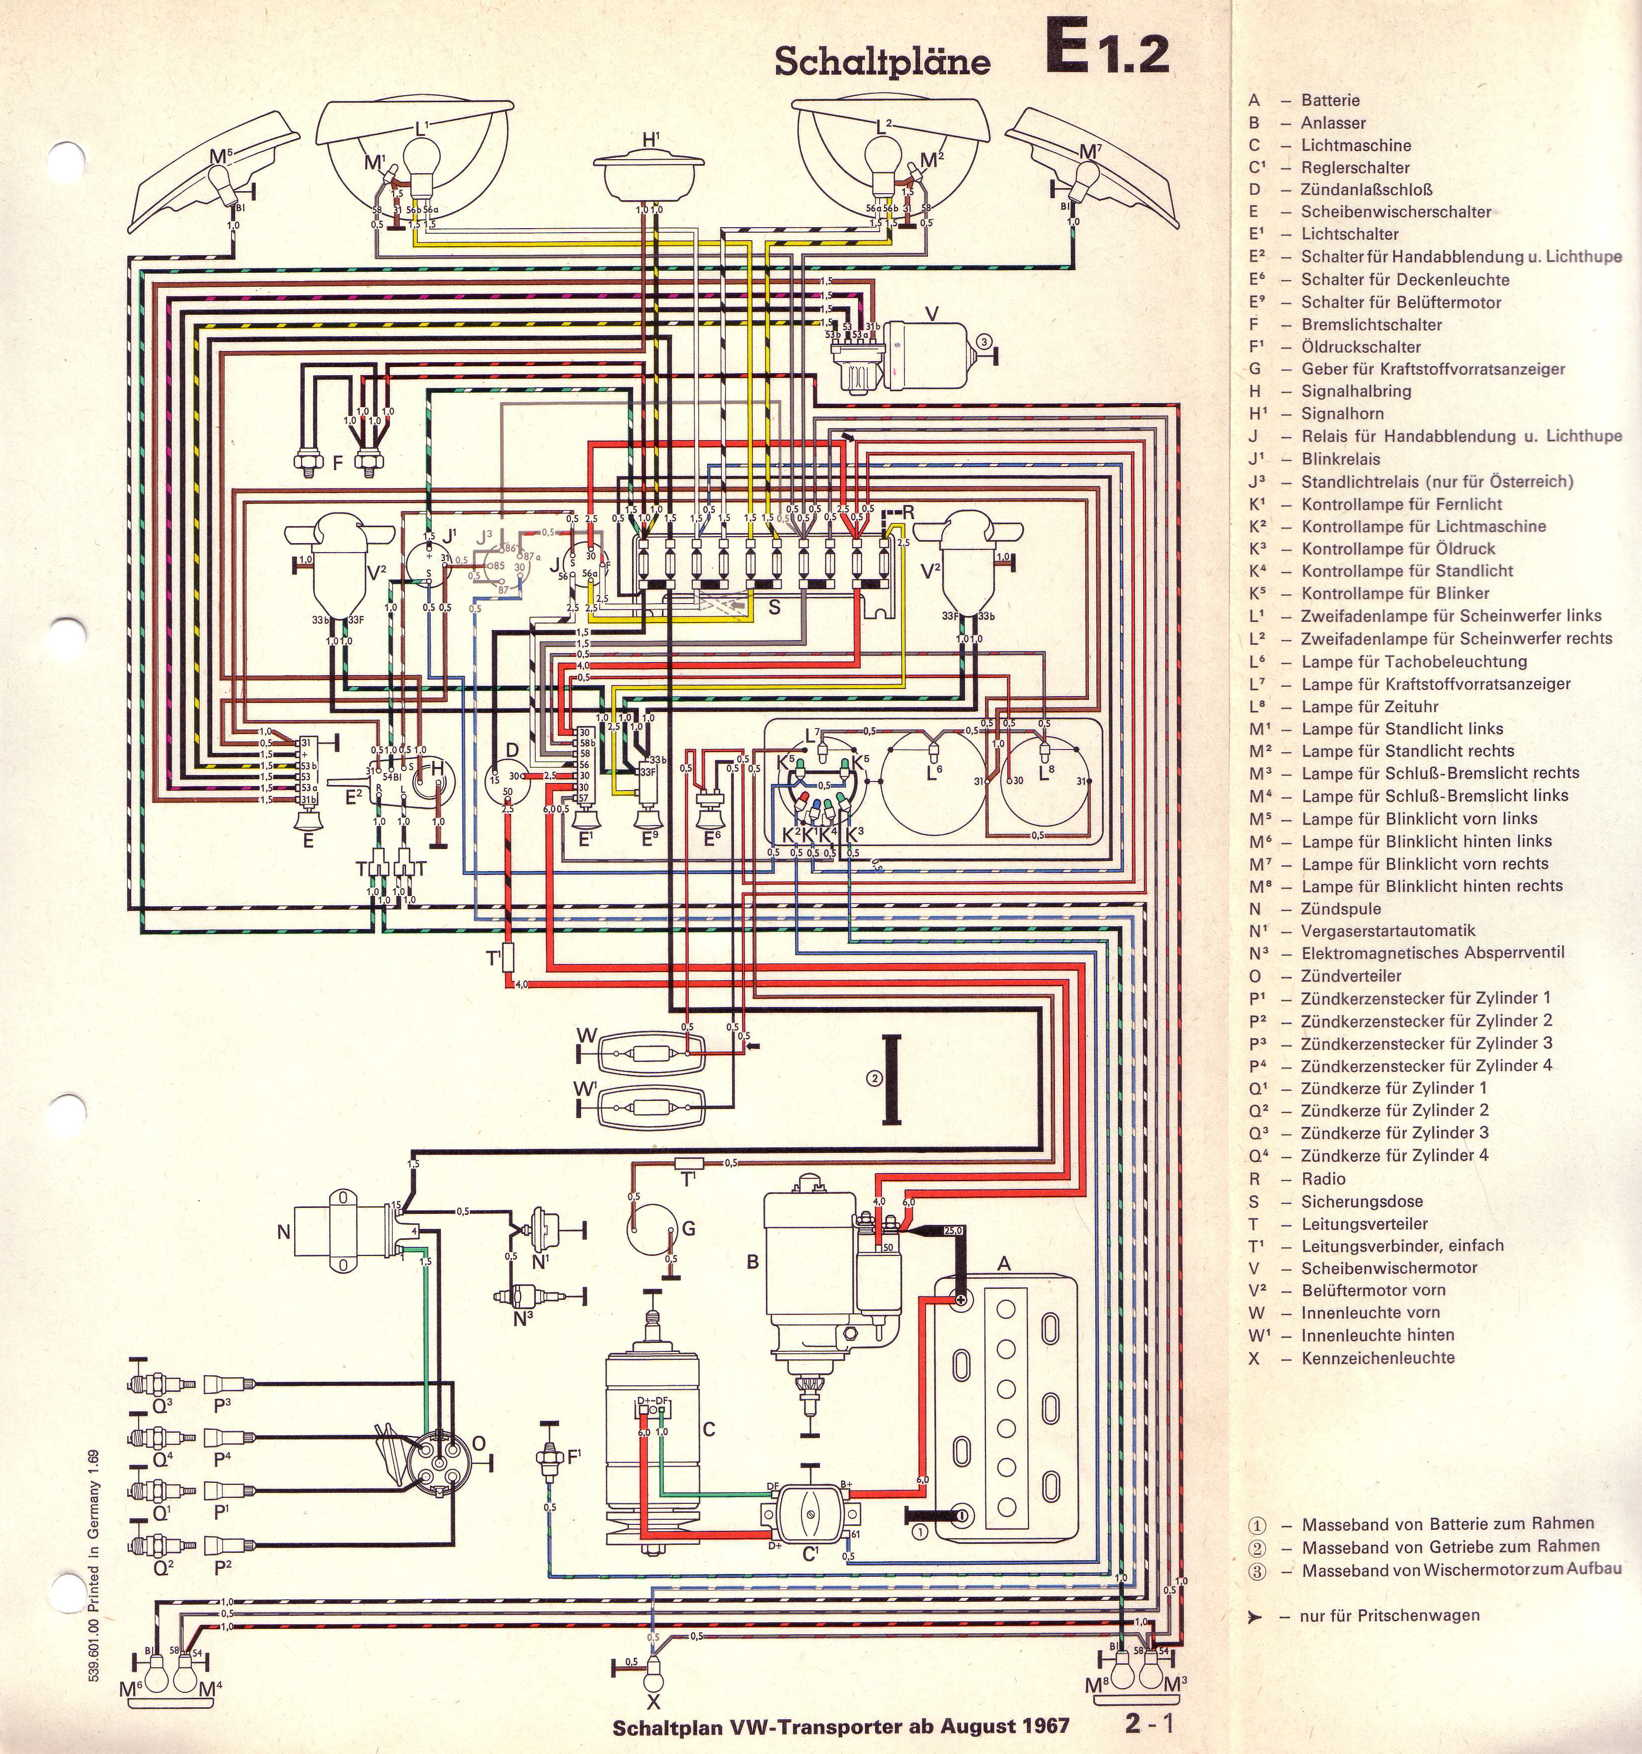 international school bus engine diagram wirdig thomas bus wiring diagram get image about wiring diagram